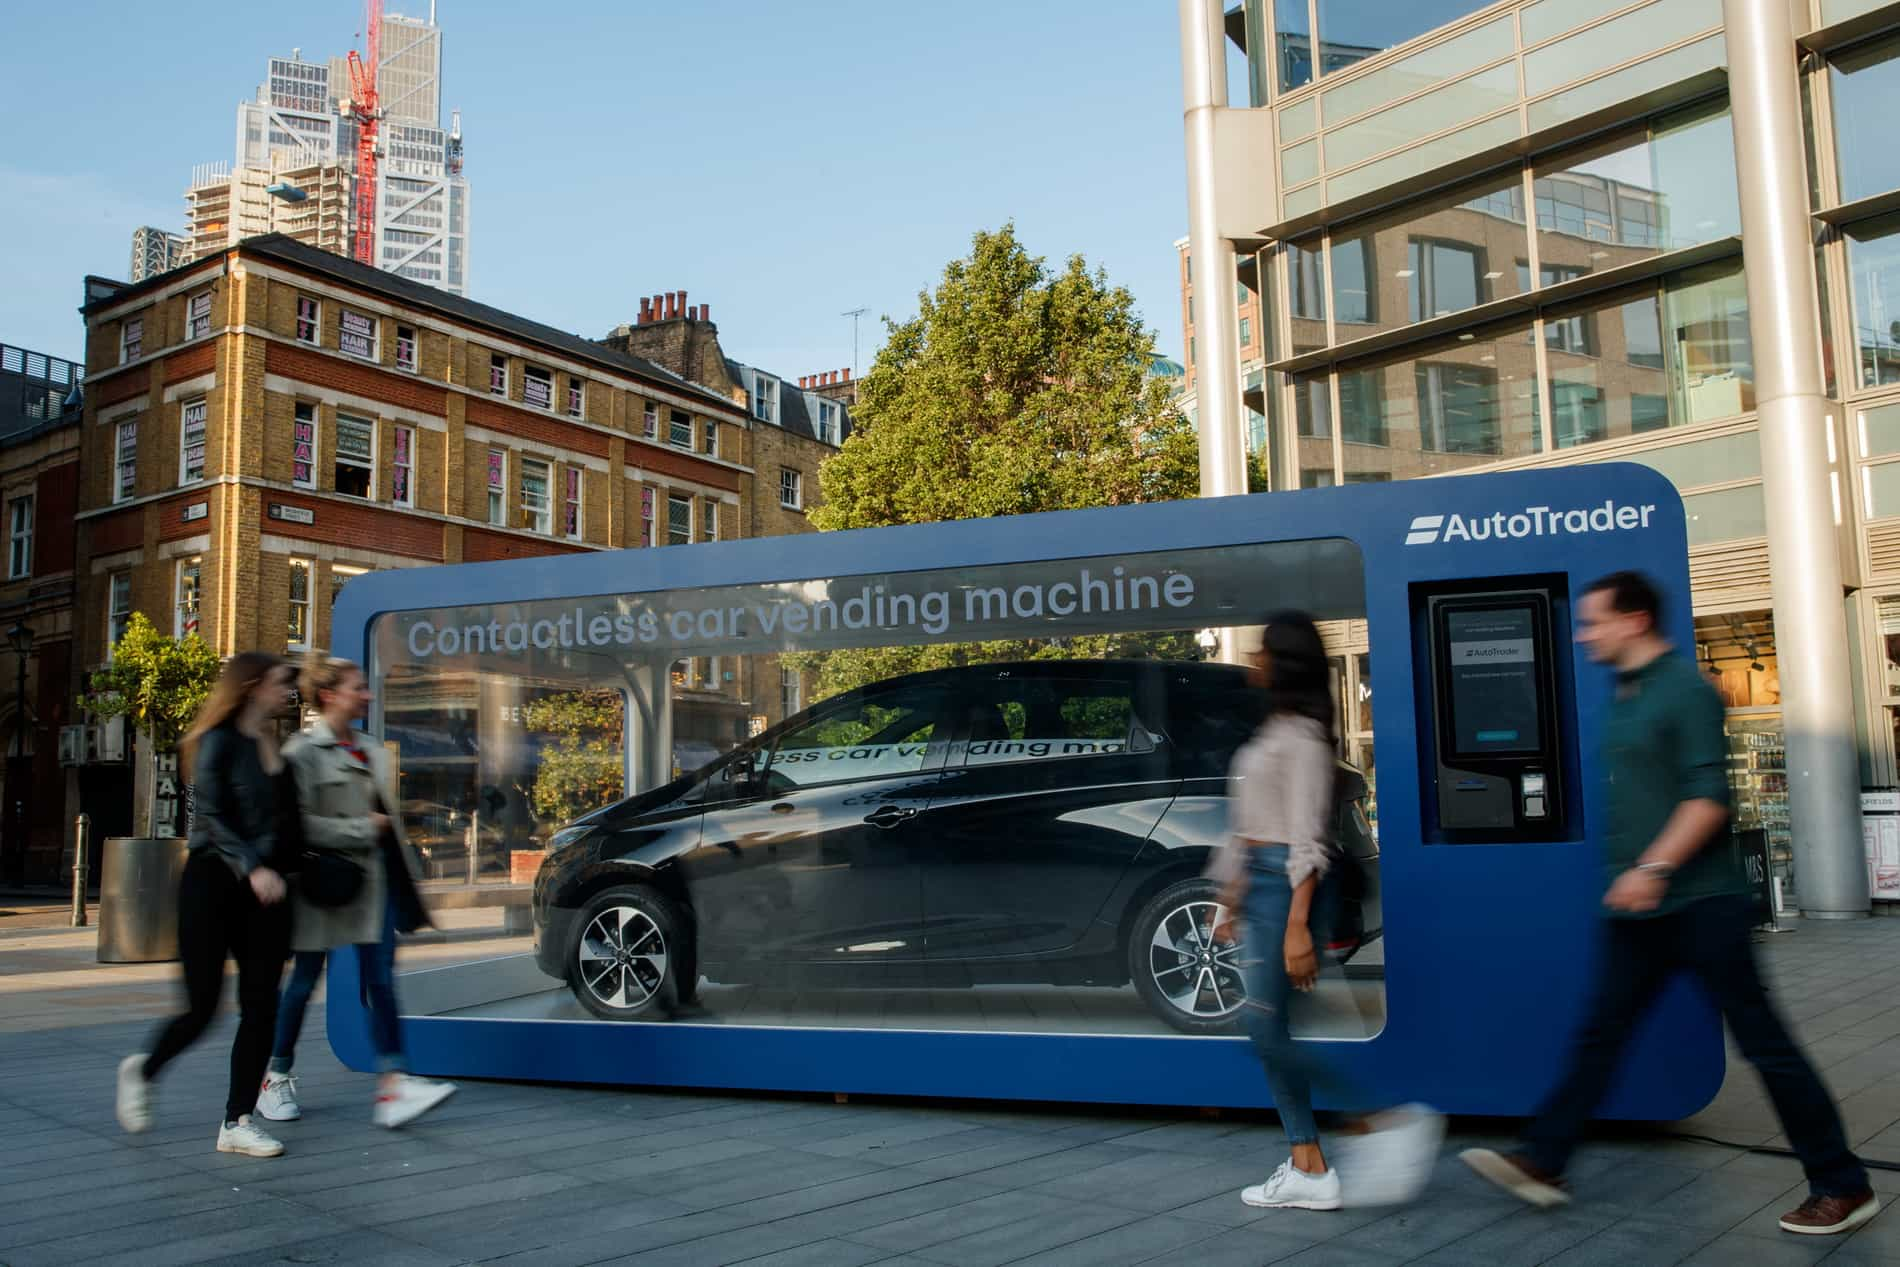 AutoTrader – World's First Car Vending Machine, London, 21st August 2019